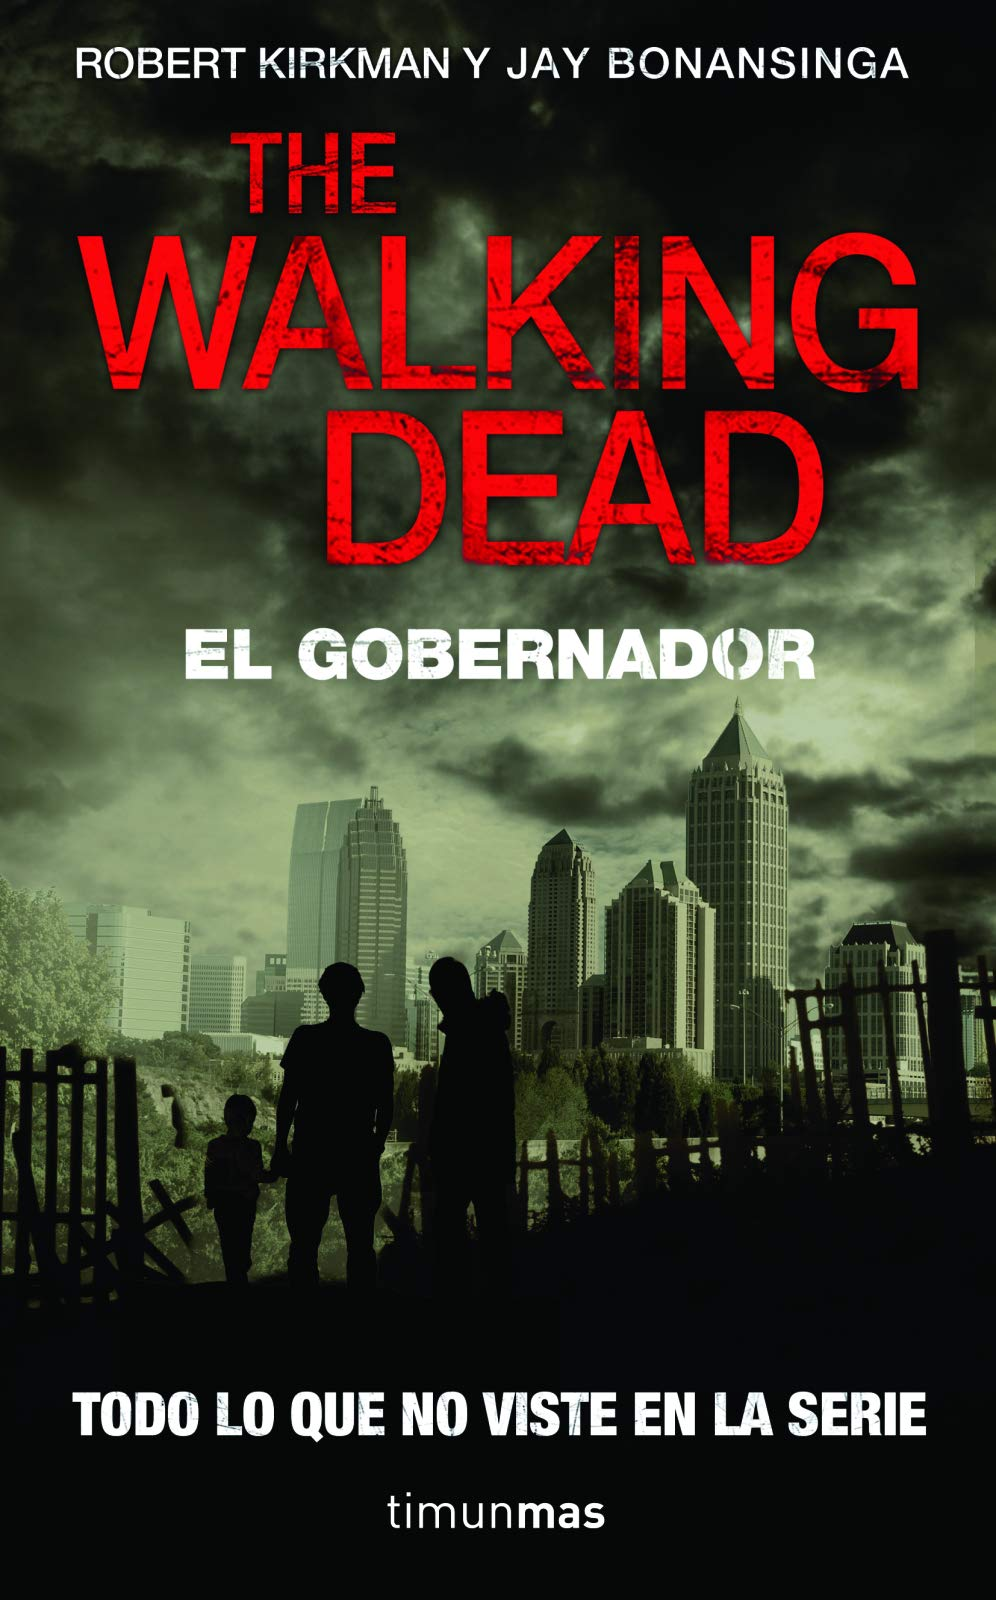 The Walking Dead El Gobernador Walking Dead The Governor Spanish Edition 9786070714788 Kirkman Robert Bonansinga Jay Books